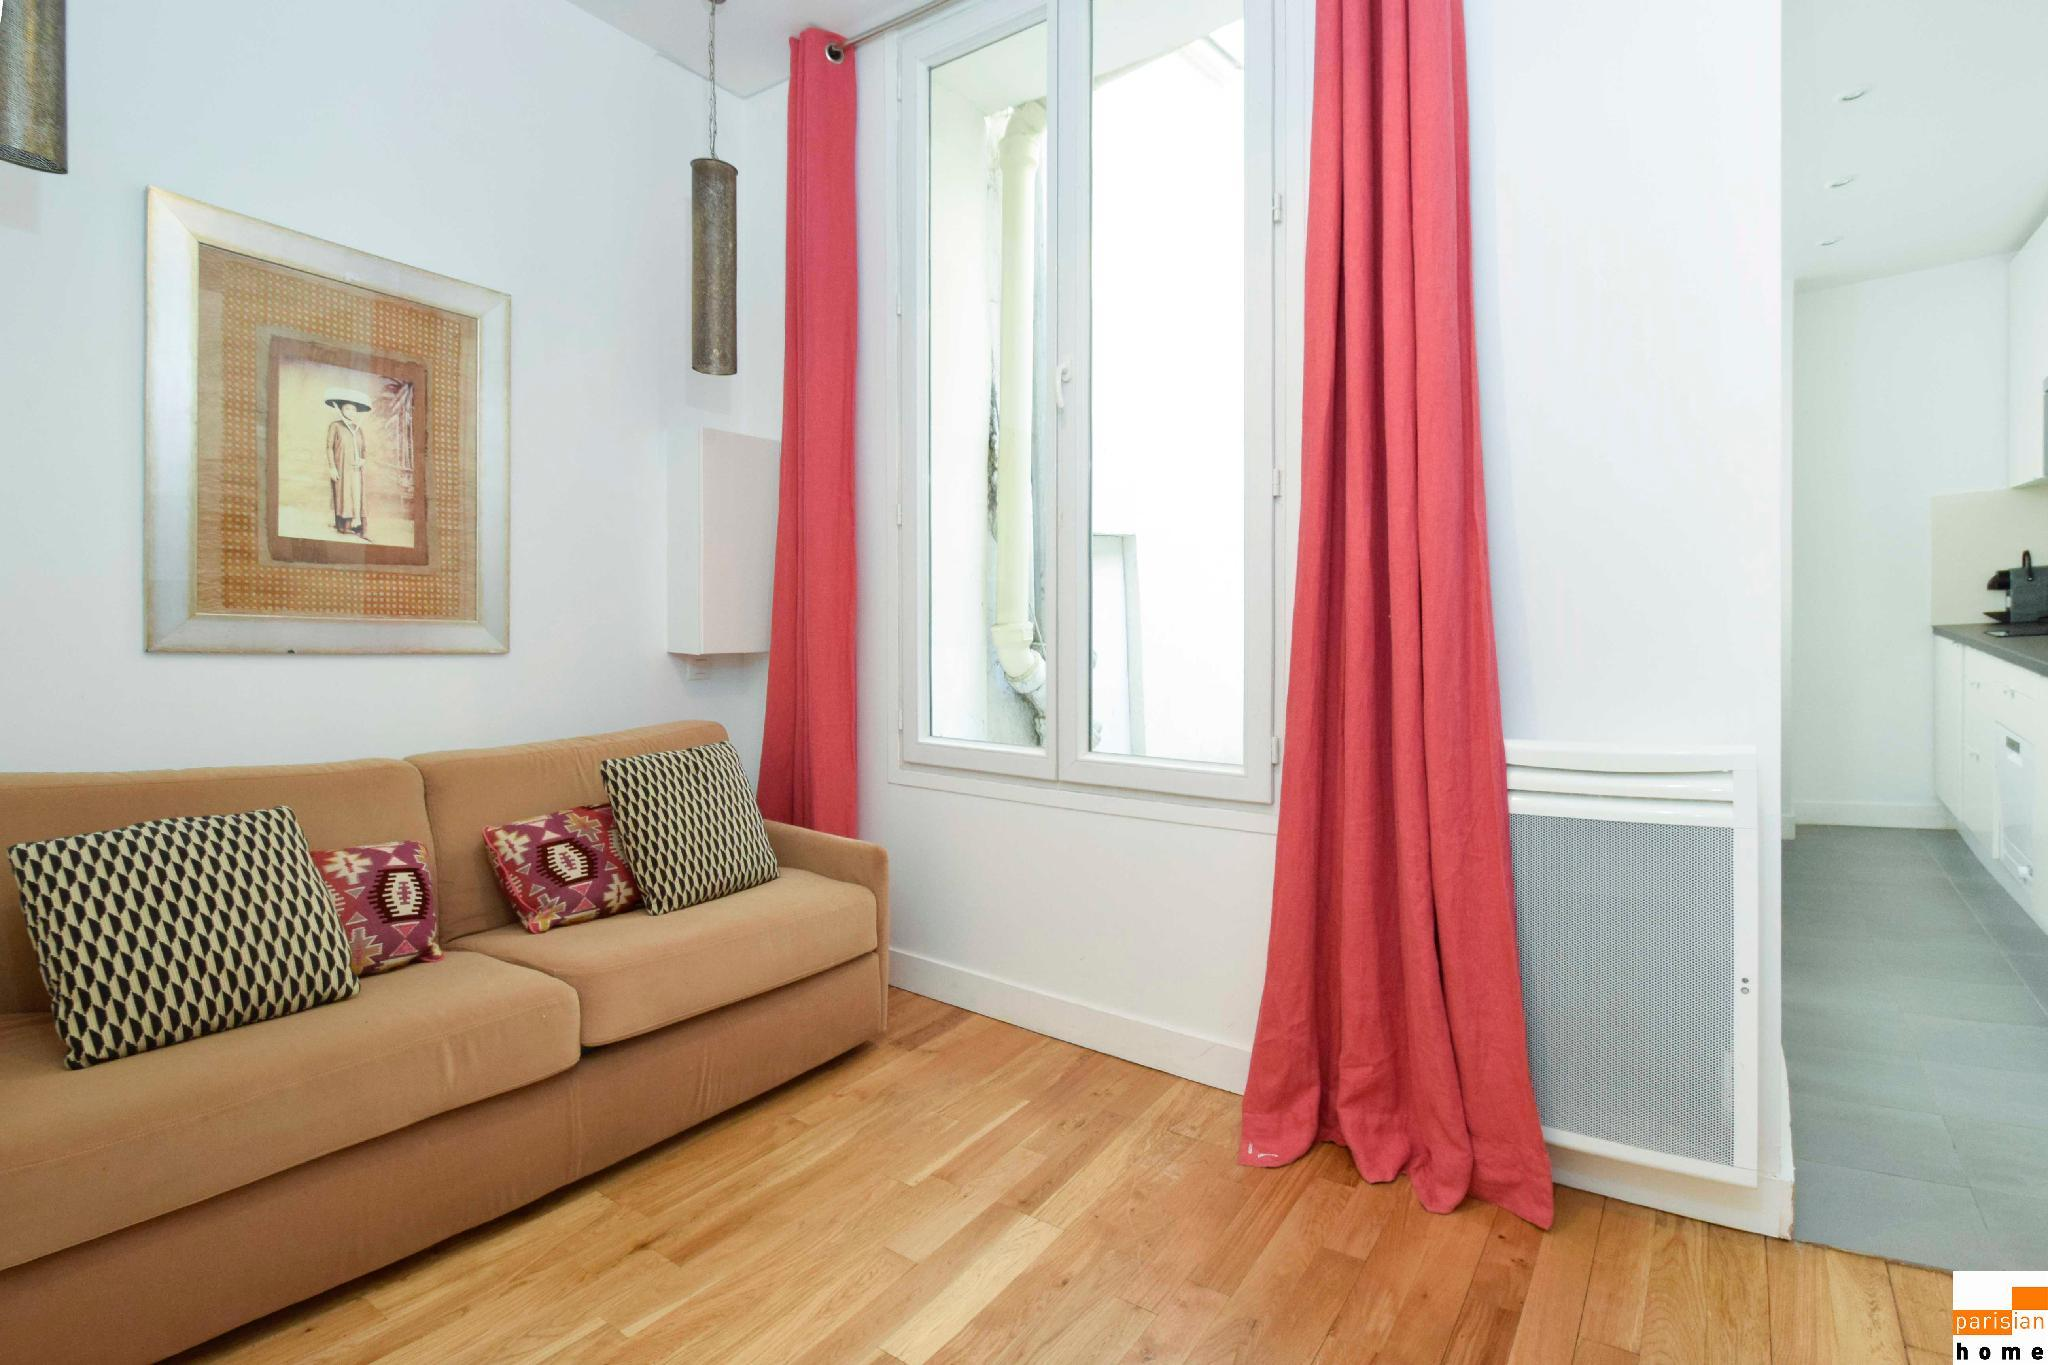 S02199 - Pretty studio for 2 people in the heart of the Montorgueil neighborhood